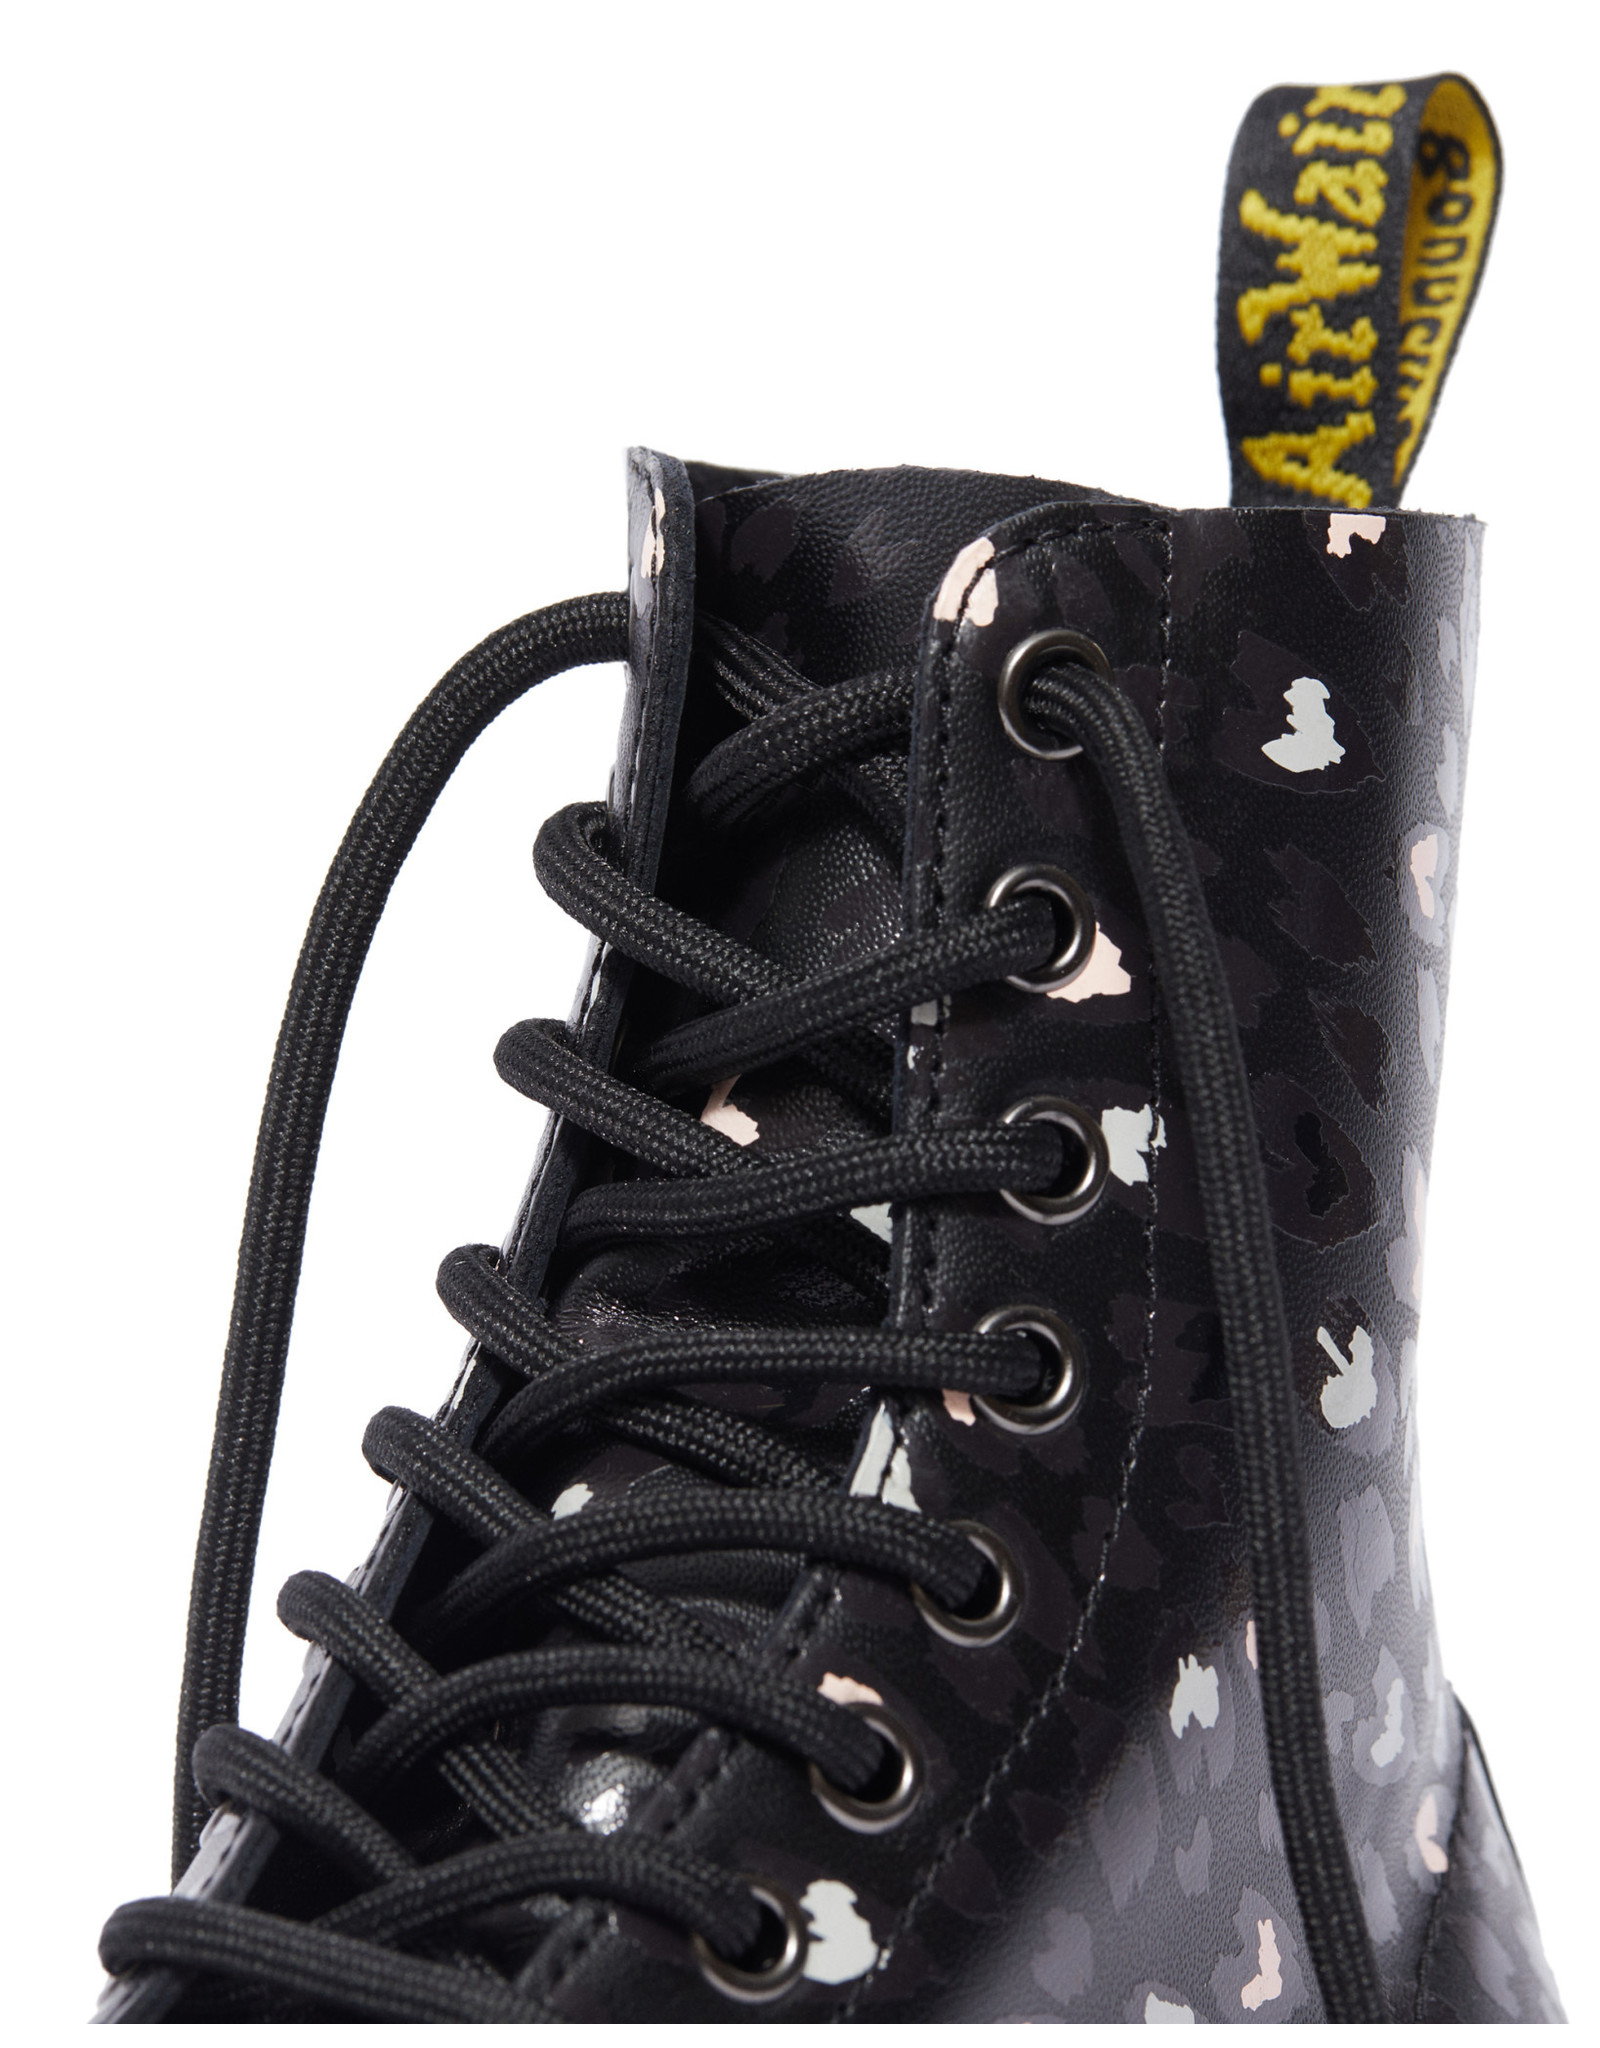 DR. MARTENS 1460 PASCAL WILD HEARTS BLACK BACKHAND 815BWH-R25481001